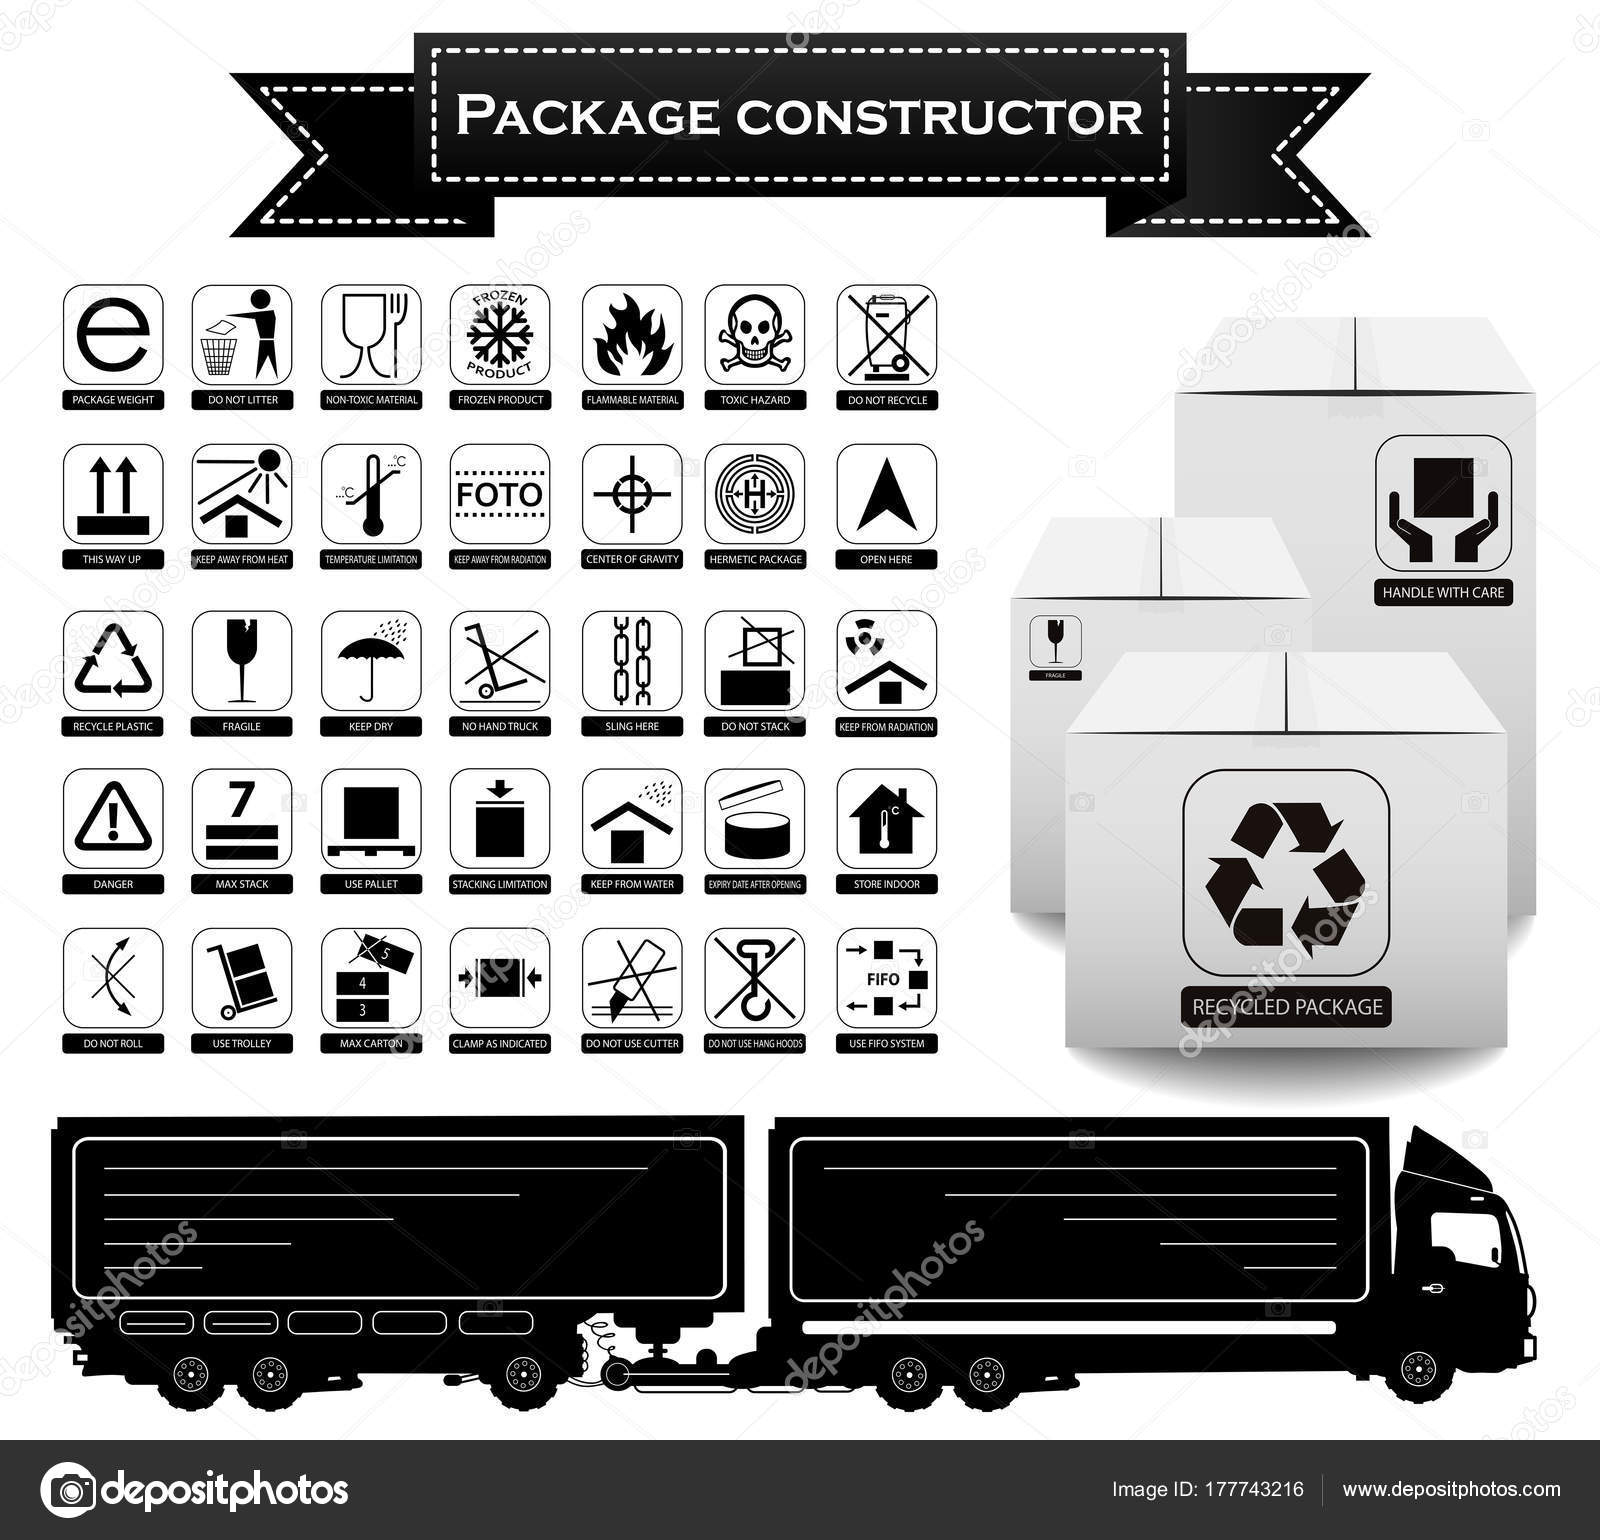 Package constructor packaging symbols icon set including waste packaging symbols icon set including waste recycling fragile flammable this side up handle with care keep dry and others buycottarizona